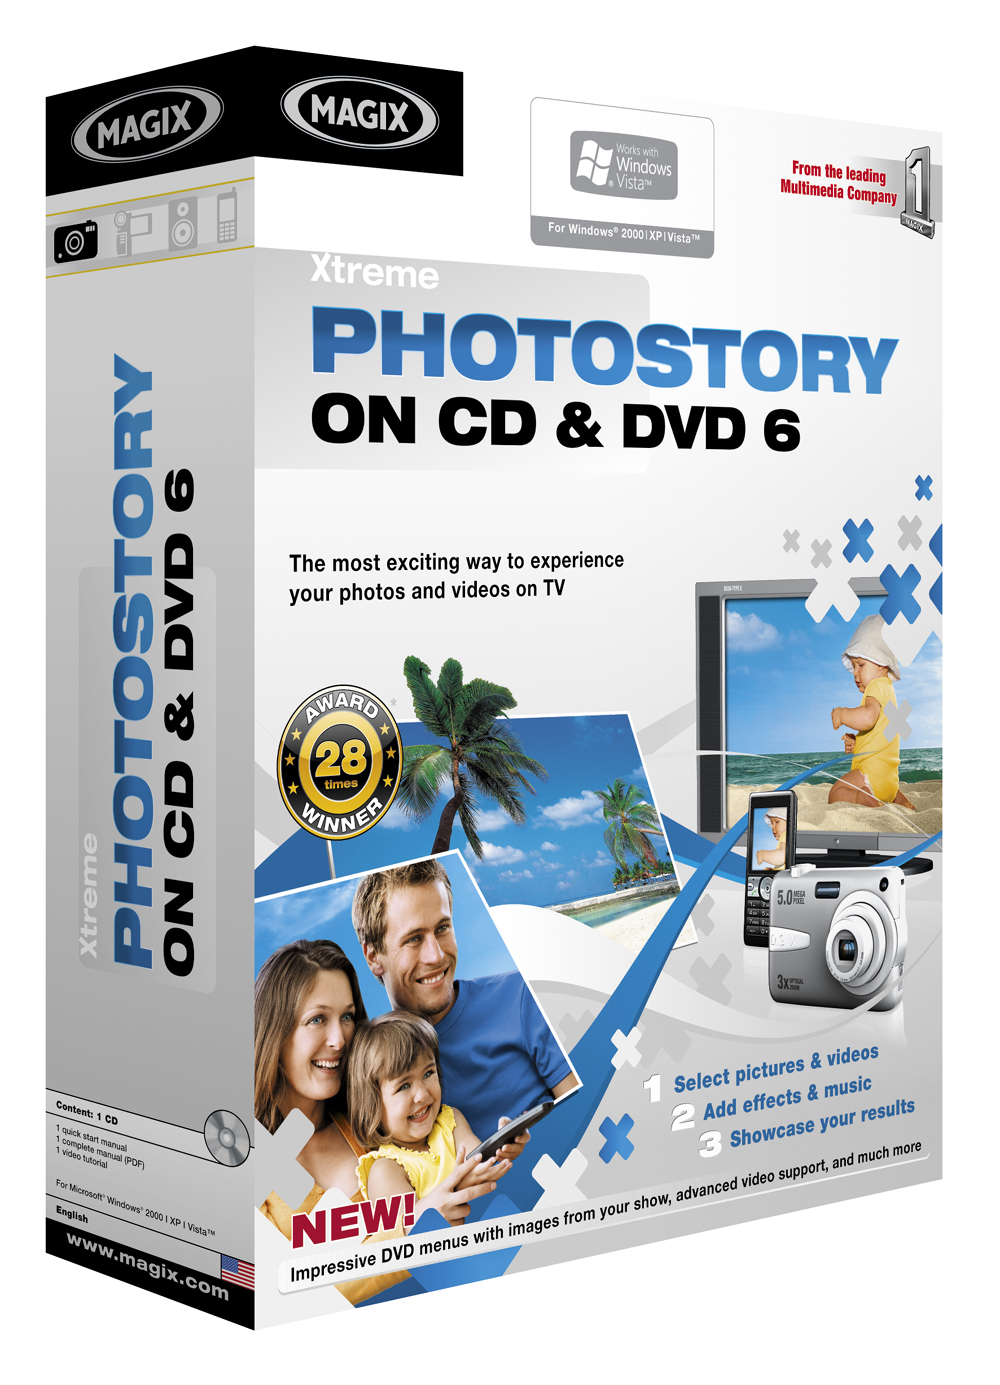 MAGIX Xtreme Photostory on CD & DVD 6 Download version